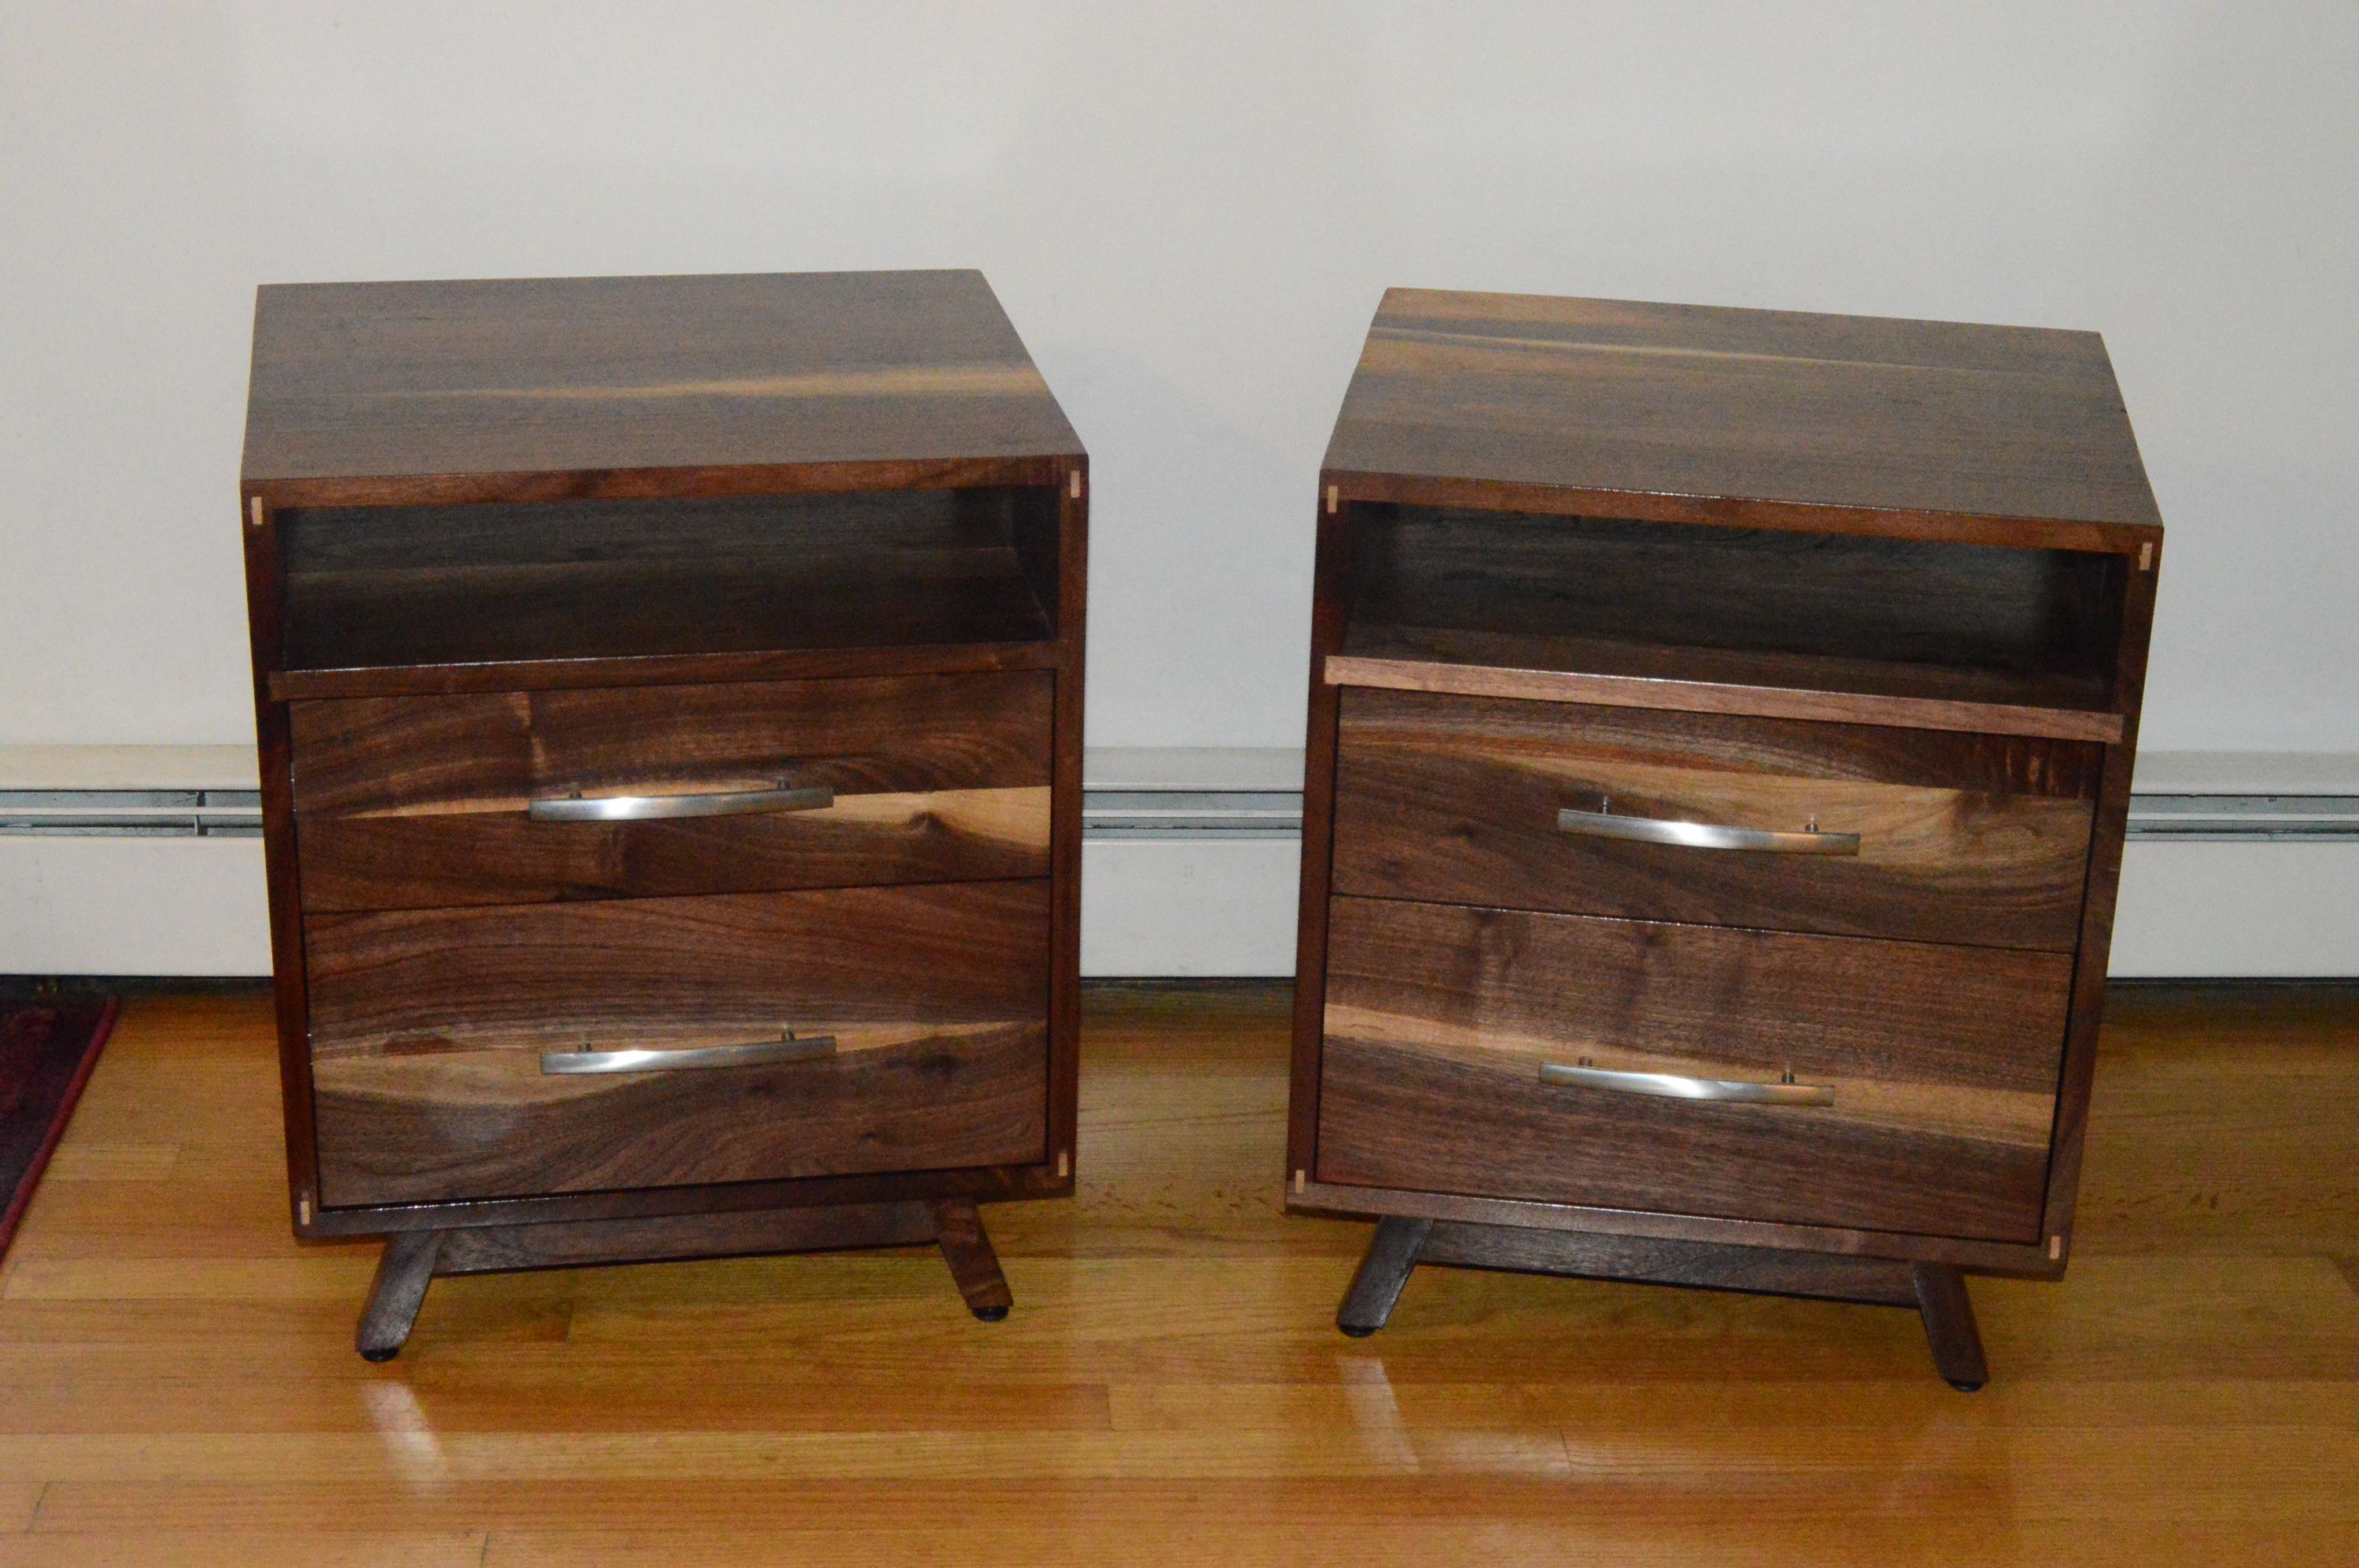 Buy A Custom Made Solid Walnut Danish Modern Nightstand Made To Order From Edelman S Wood